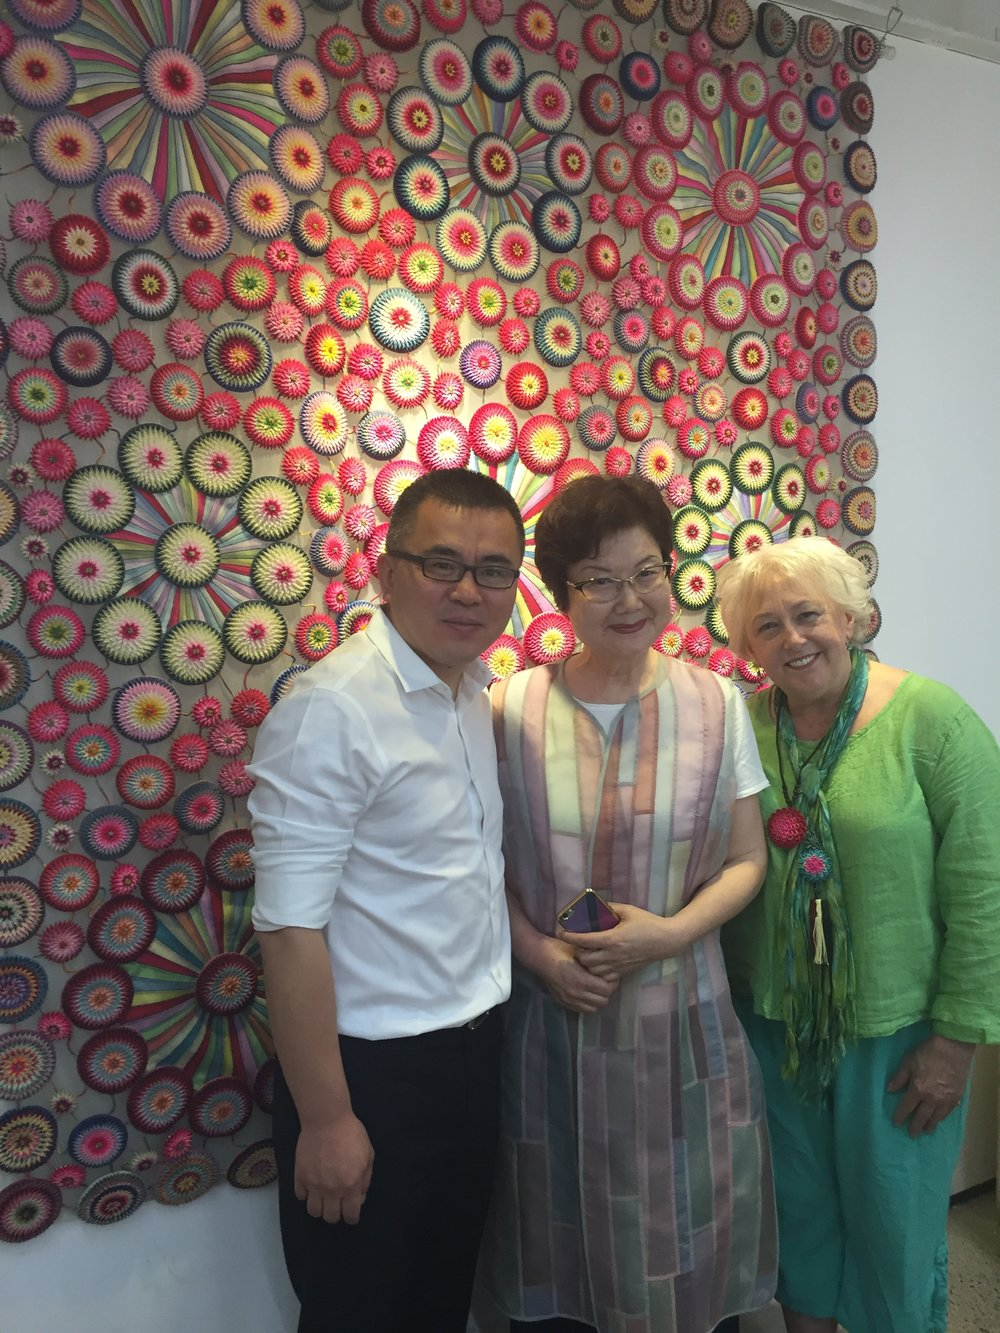 One of Miss Jin's incredible quilts, in her studio.